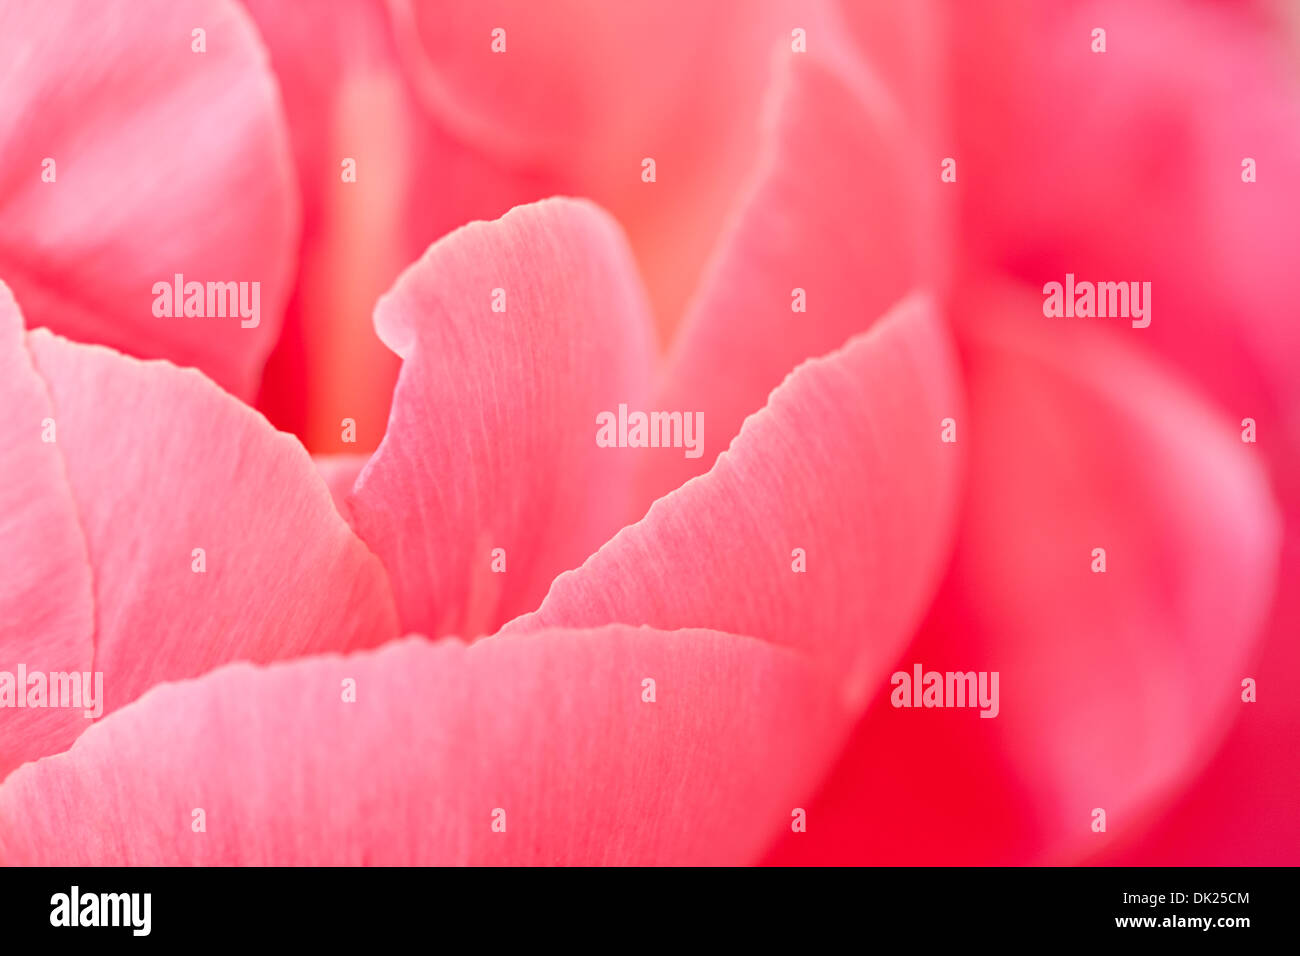 Full frame close up detail of pink peony petals - Stock Image